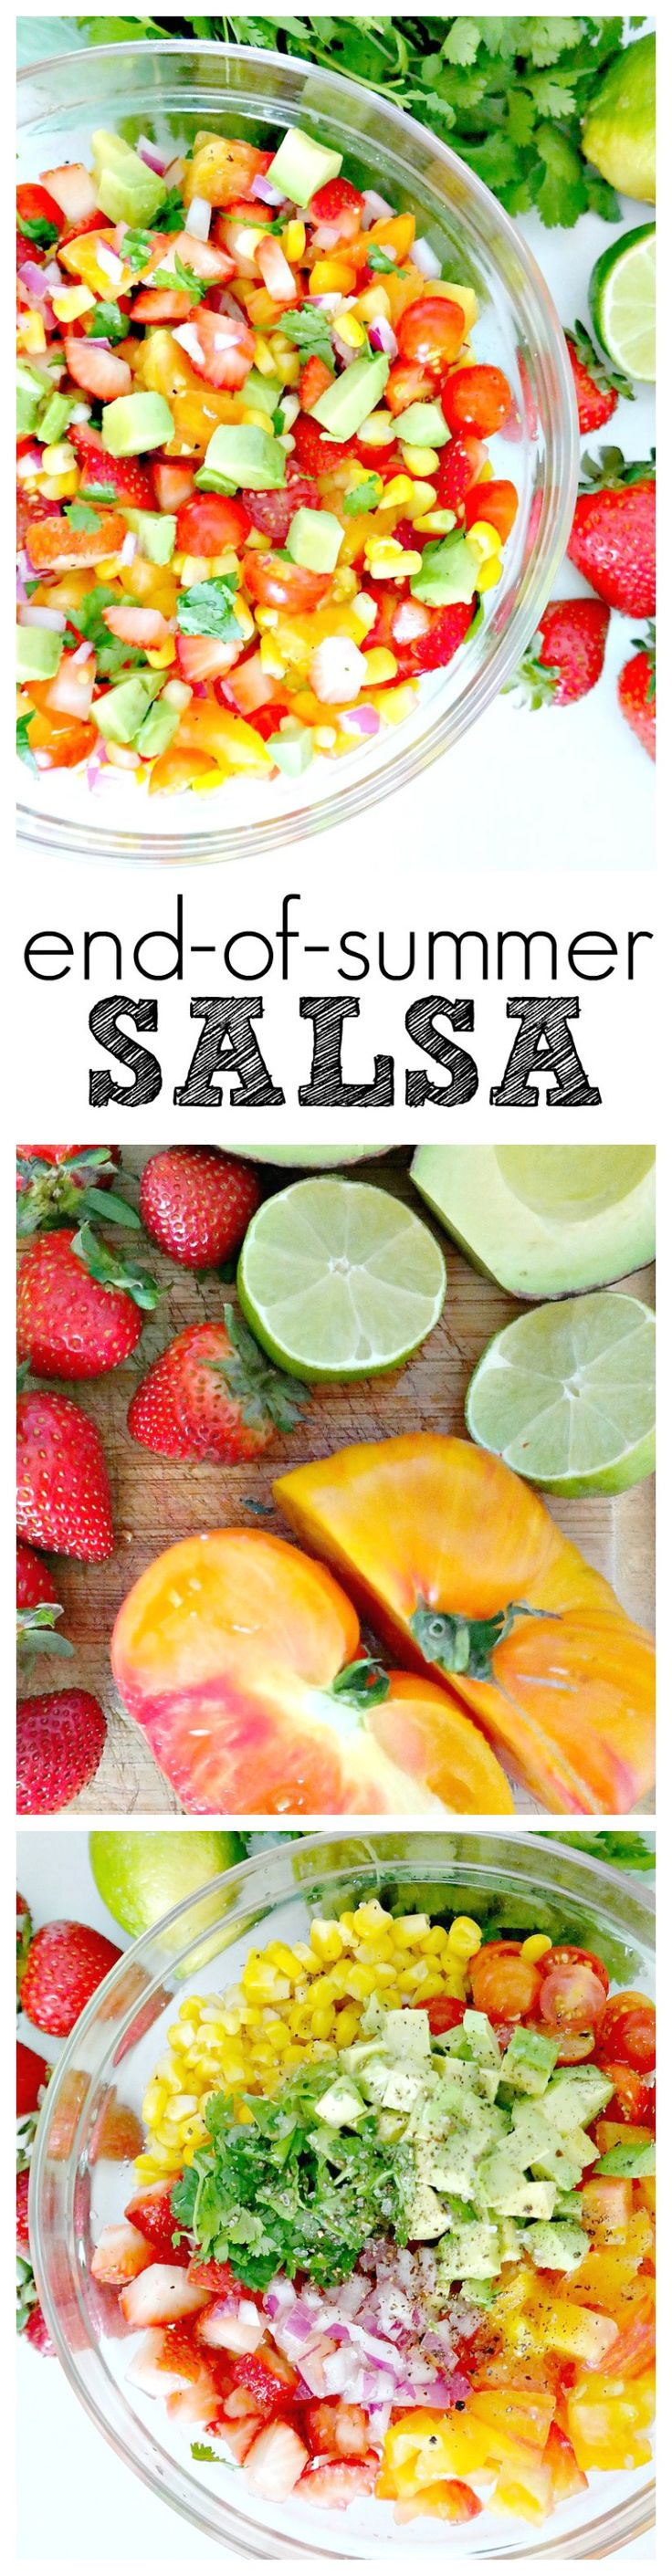 End-of-Summer Salsa. VEGAN & GLUTEN-FREE. The BEST way to finish out the summer with juicy strawberries, heirloom tomatoes, super sweet corn and ripe avocado. So easy and so addicting!! Simple, sweet and savory. #summer #salsa #vegan